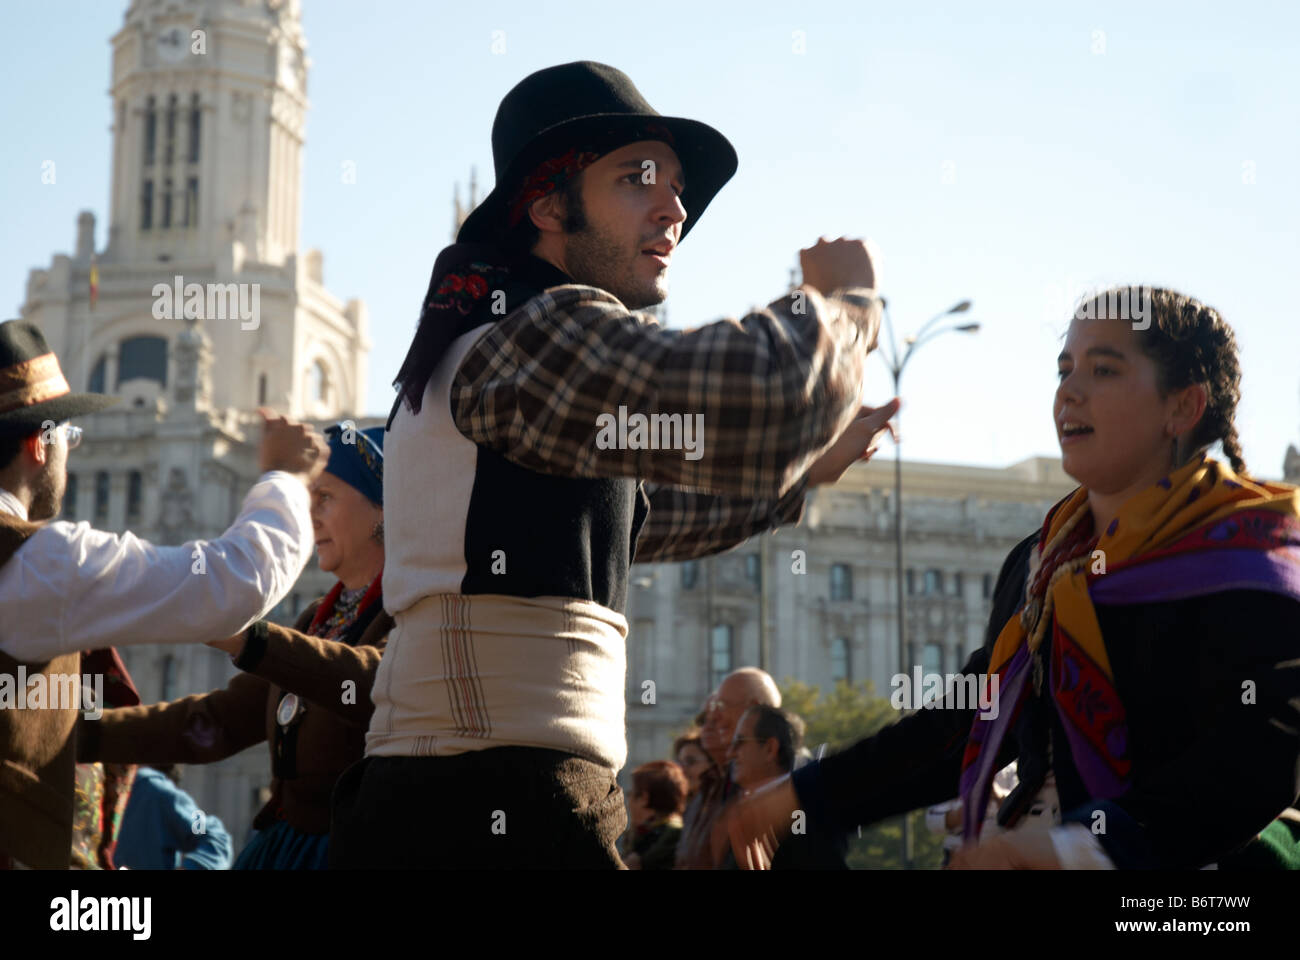 Members of Spain's Roma community hold a parade in Plaza de Cibeles, Madrid, Spain - Stock Image